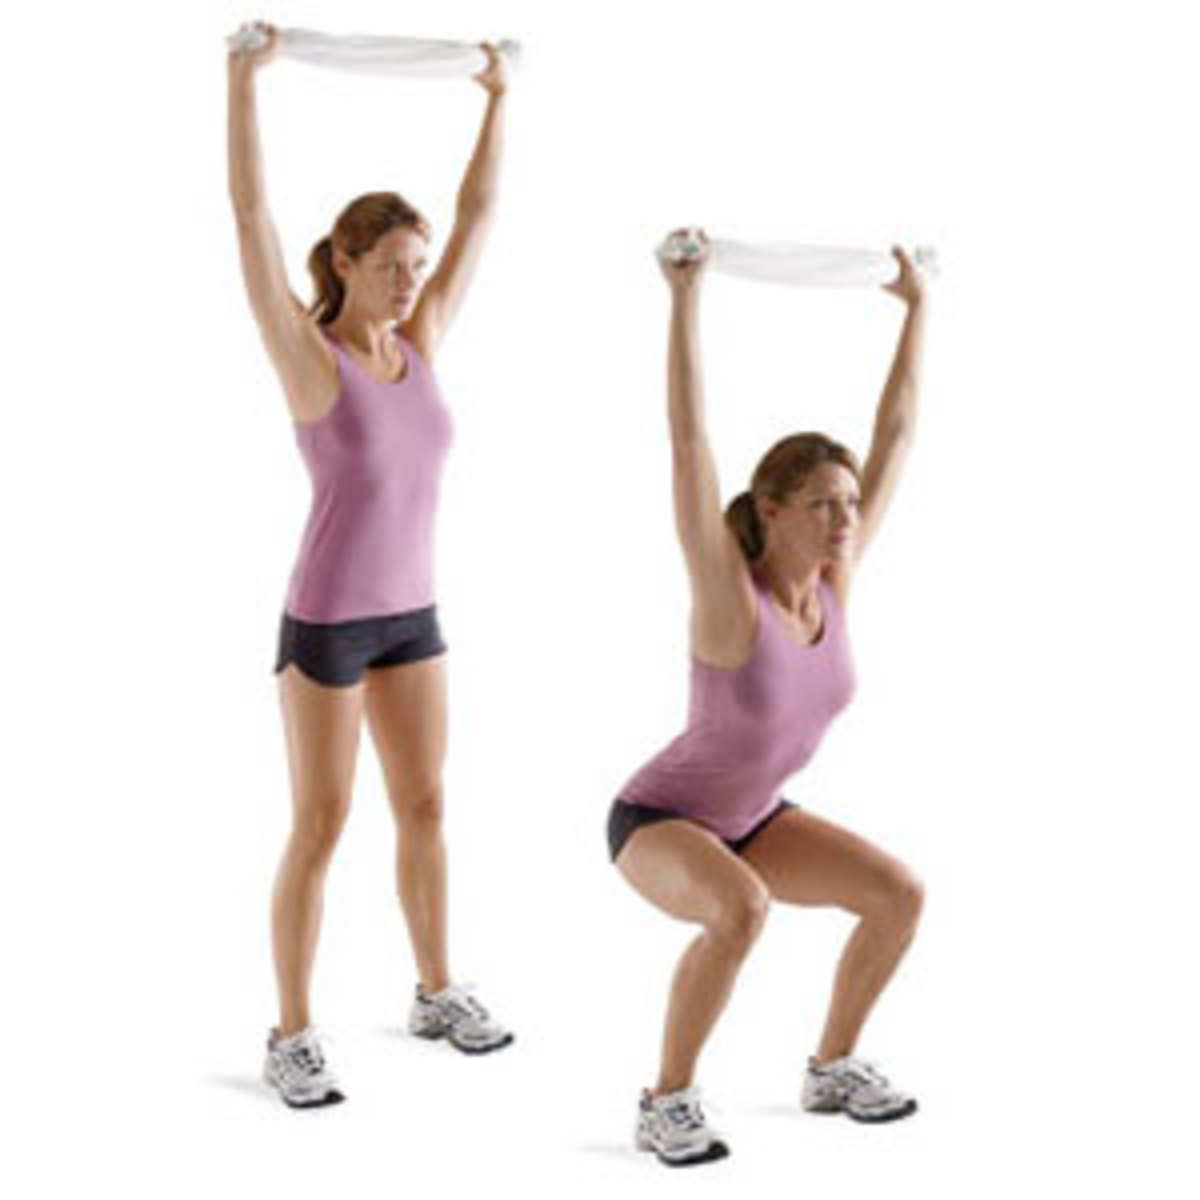 Performing the overhead squat with a towel. Note that the arms are lined up over the shoulders and hips.